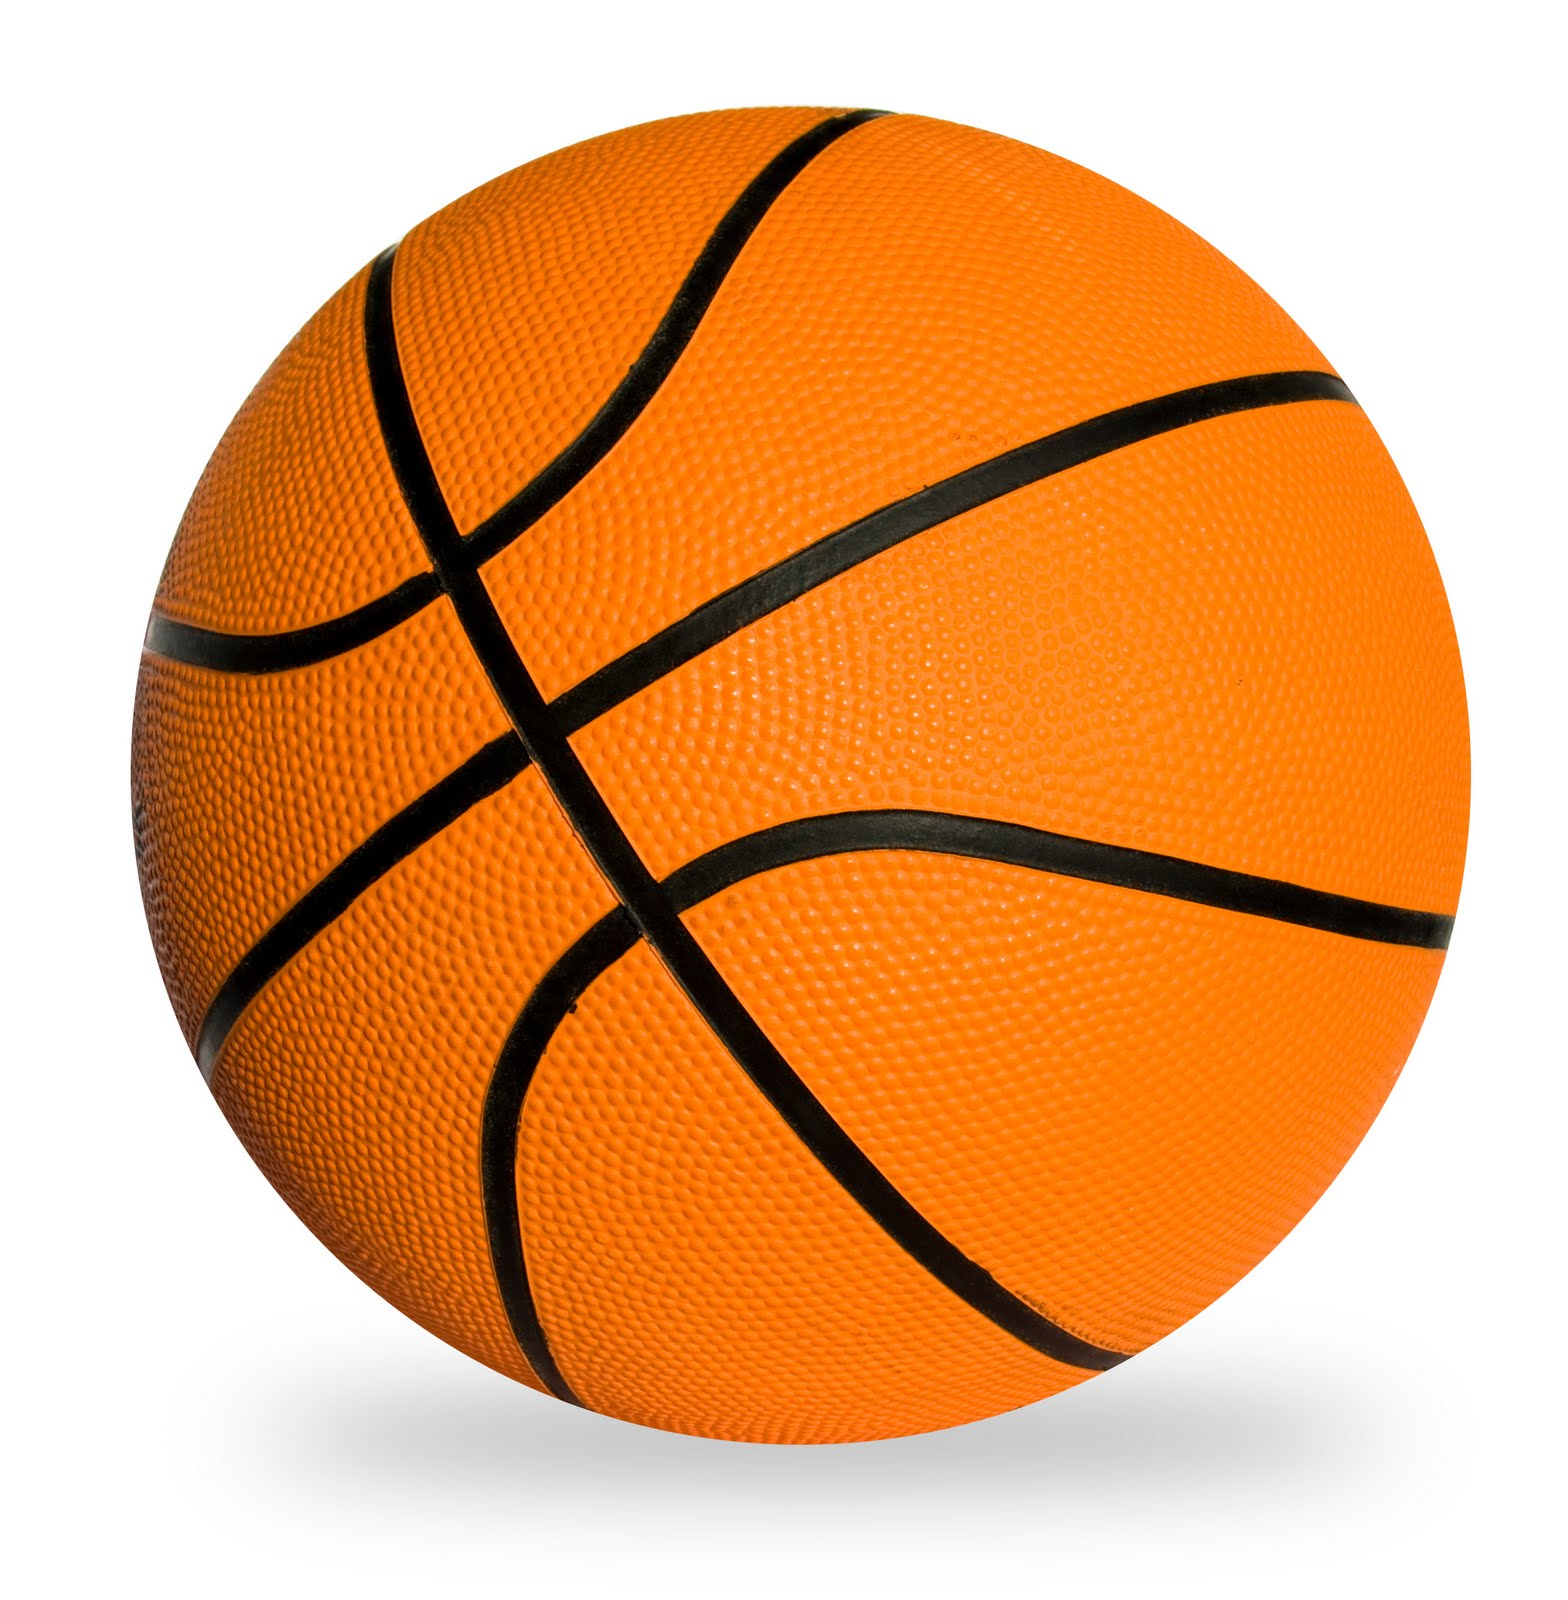 Free Wallpapers Blog: basketball